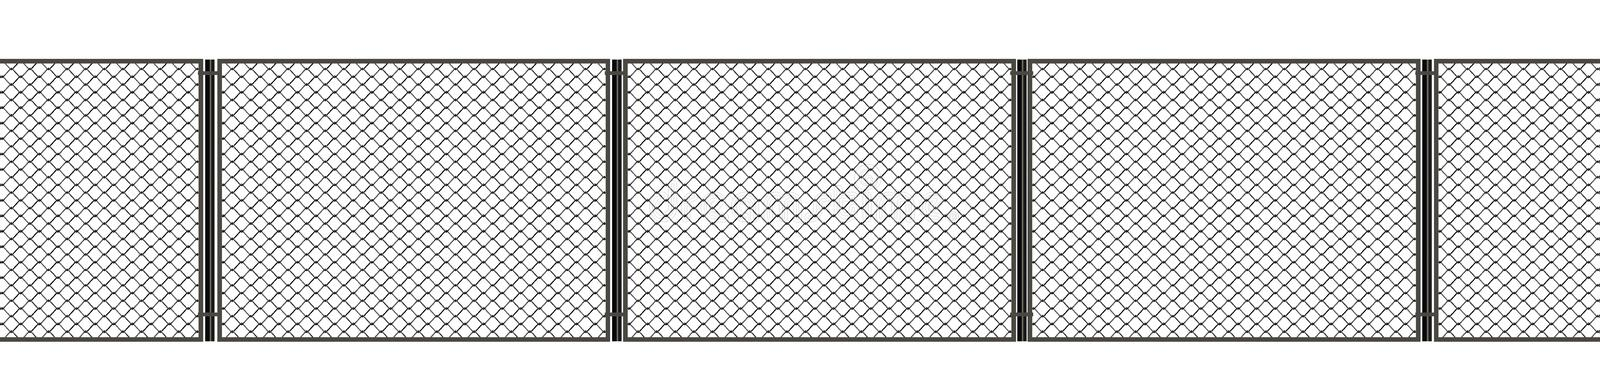 3d illustration. Net metal fence on a white background stock illustration